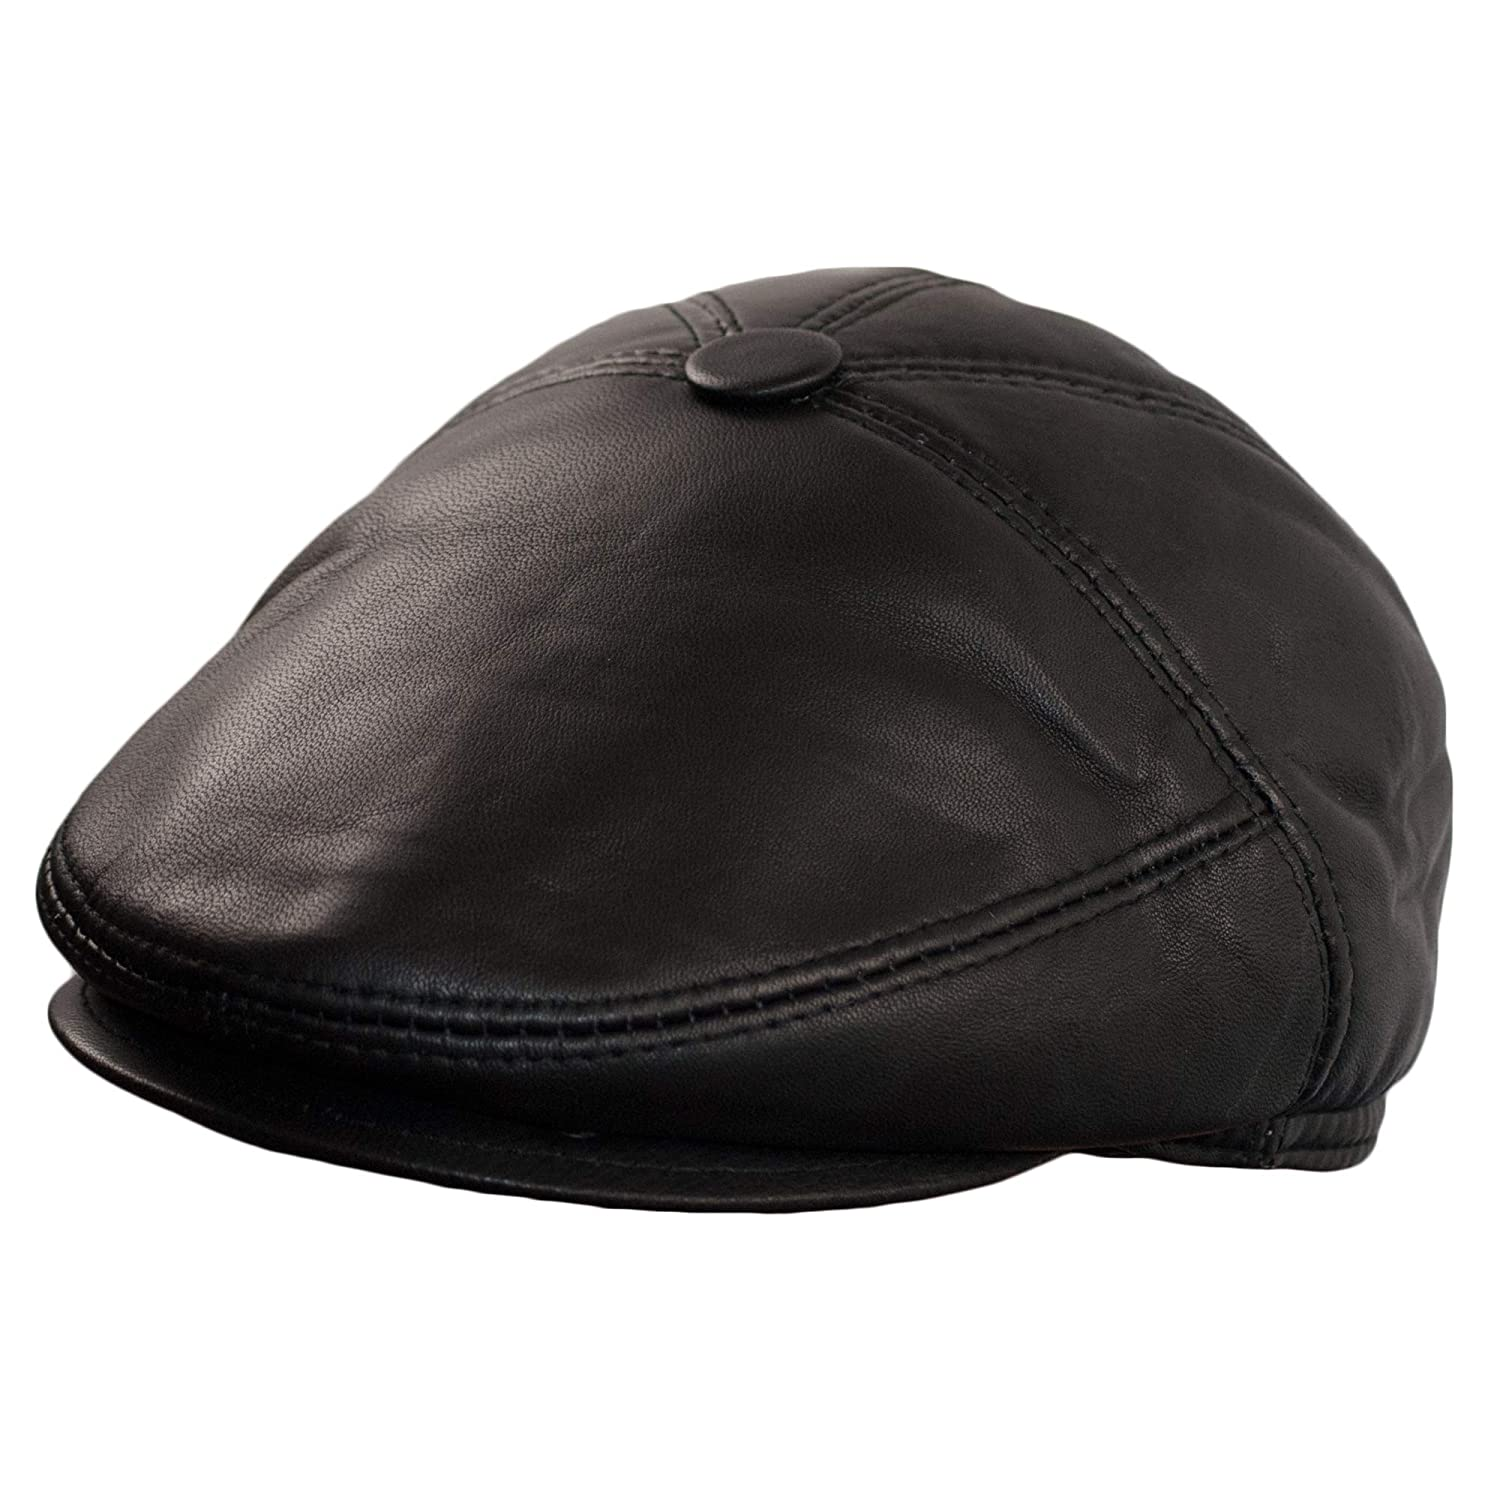 Dazoriginal Newsboy Hats Men Baker boy Leather Hat 5 Panel Cap Irish Flat Cap